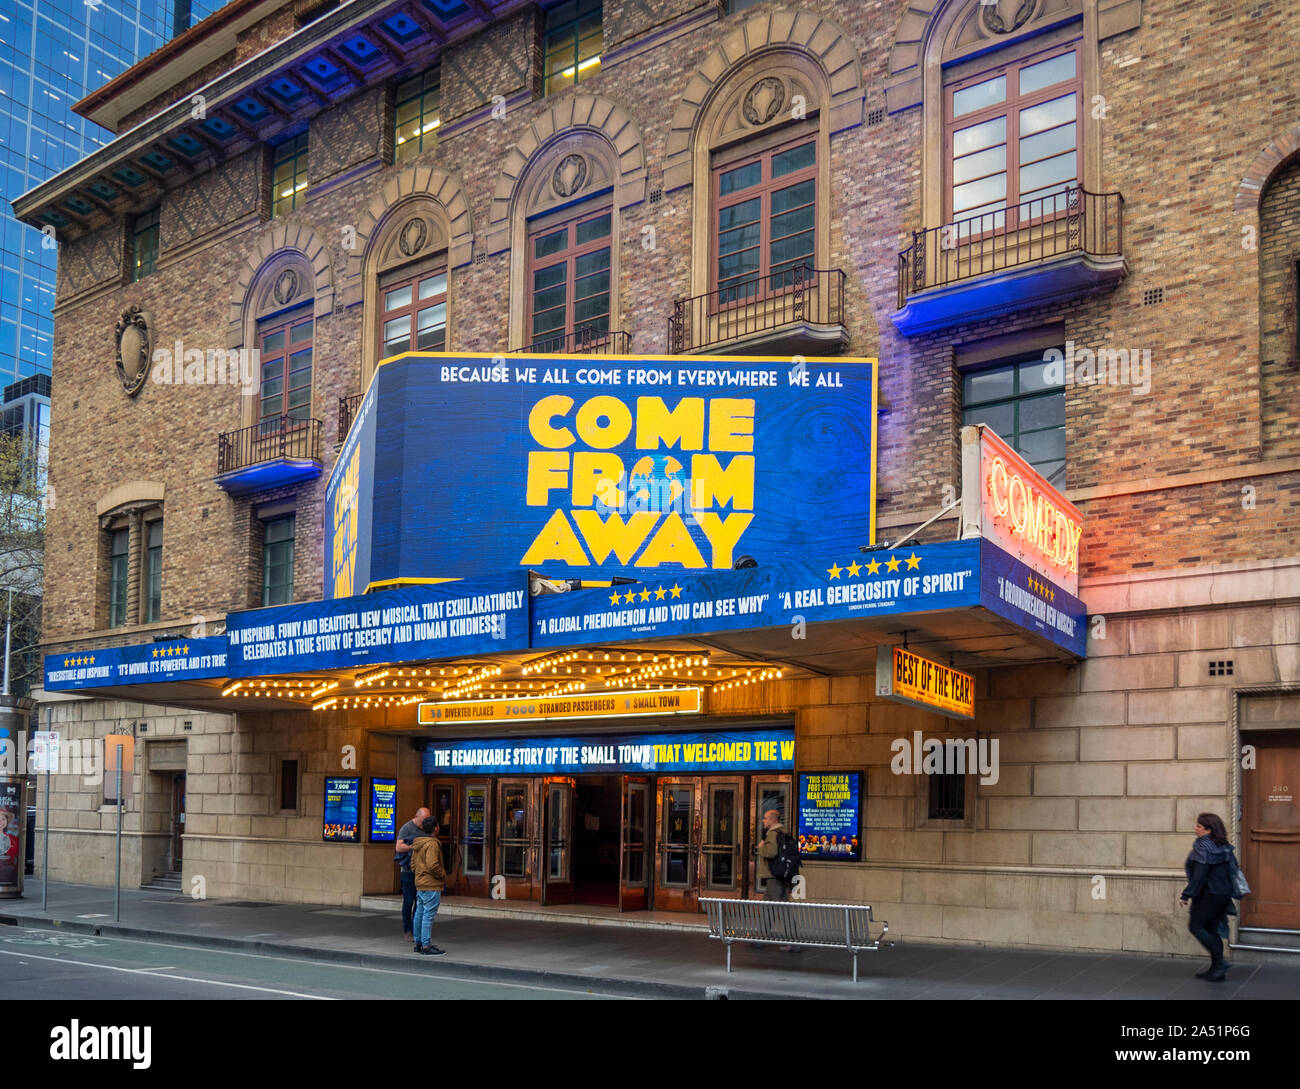 musical-come-from-away-showing-at-comedy-theatre-exhibition-street-melbourne-victoria-australia-2A51P6G.jpg